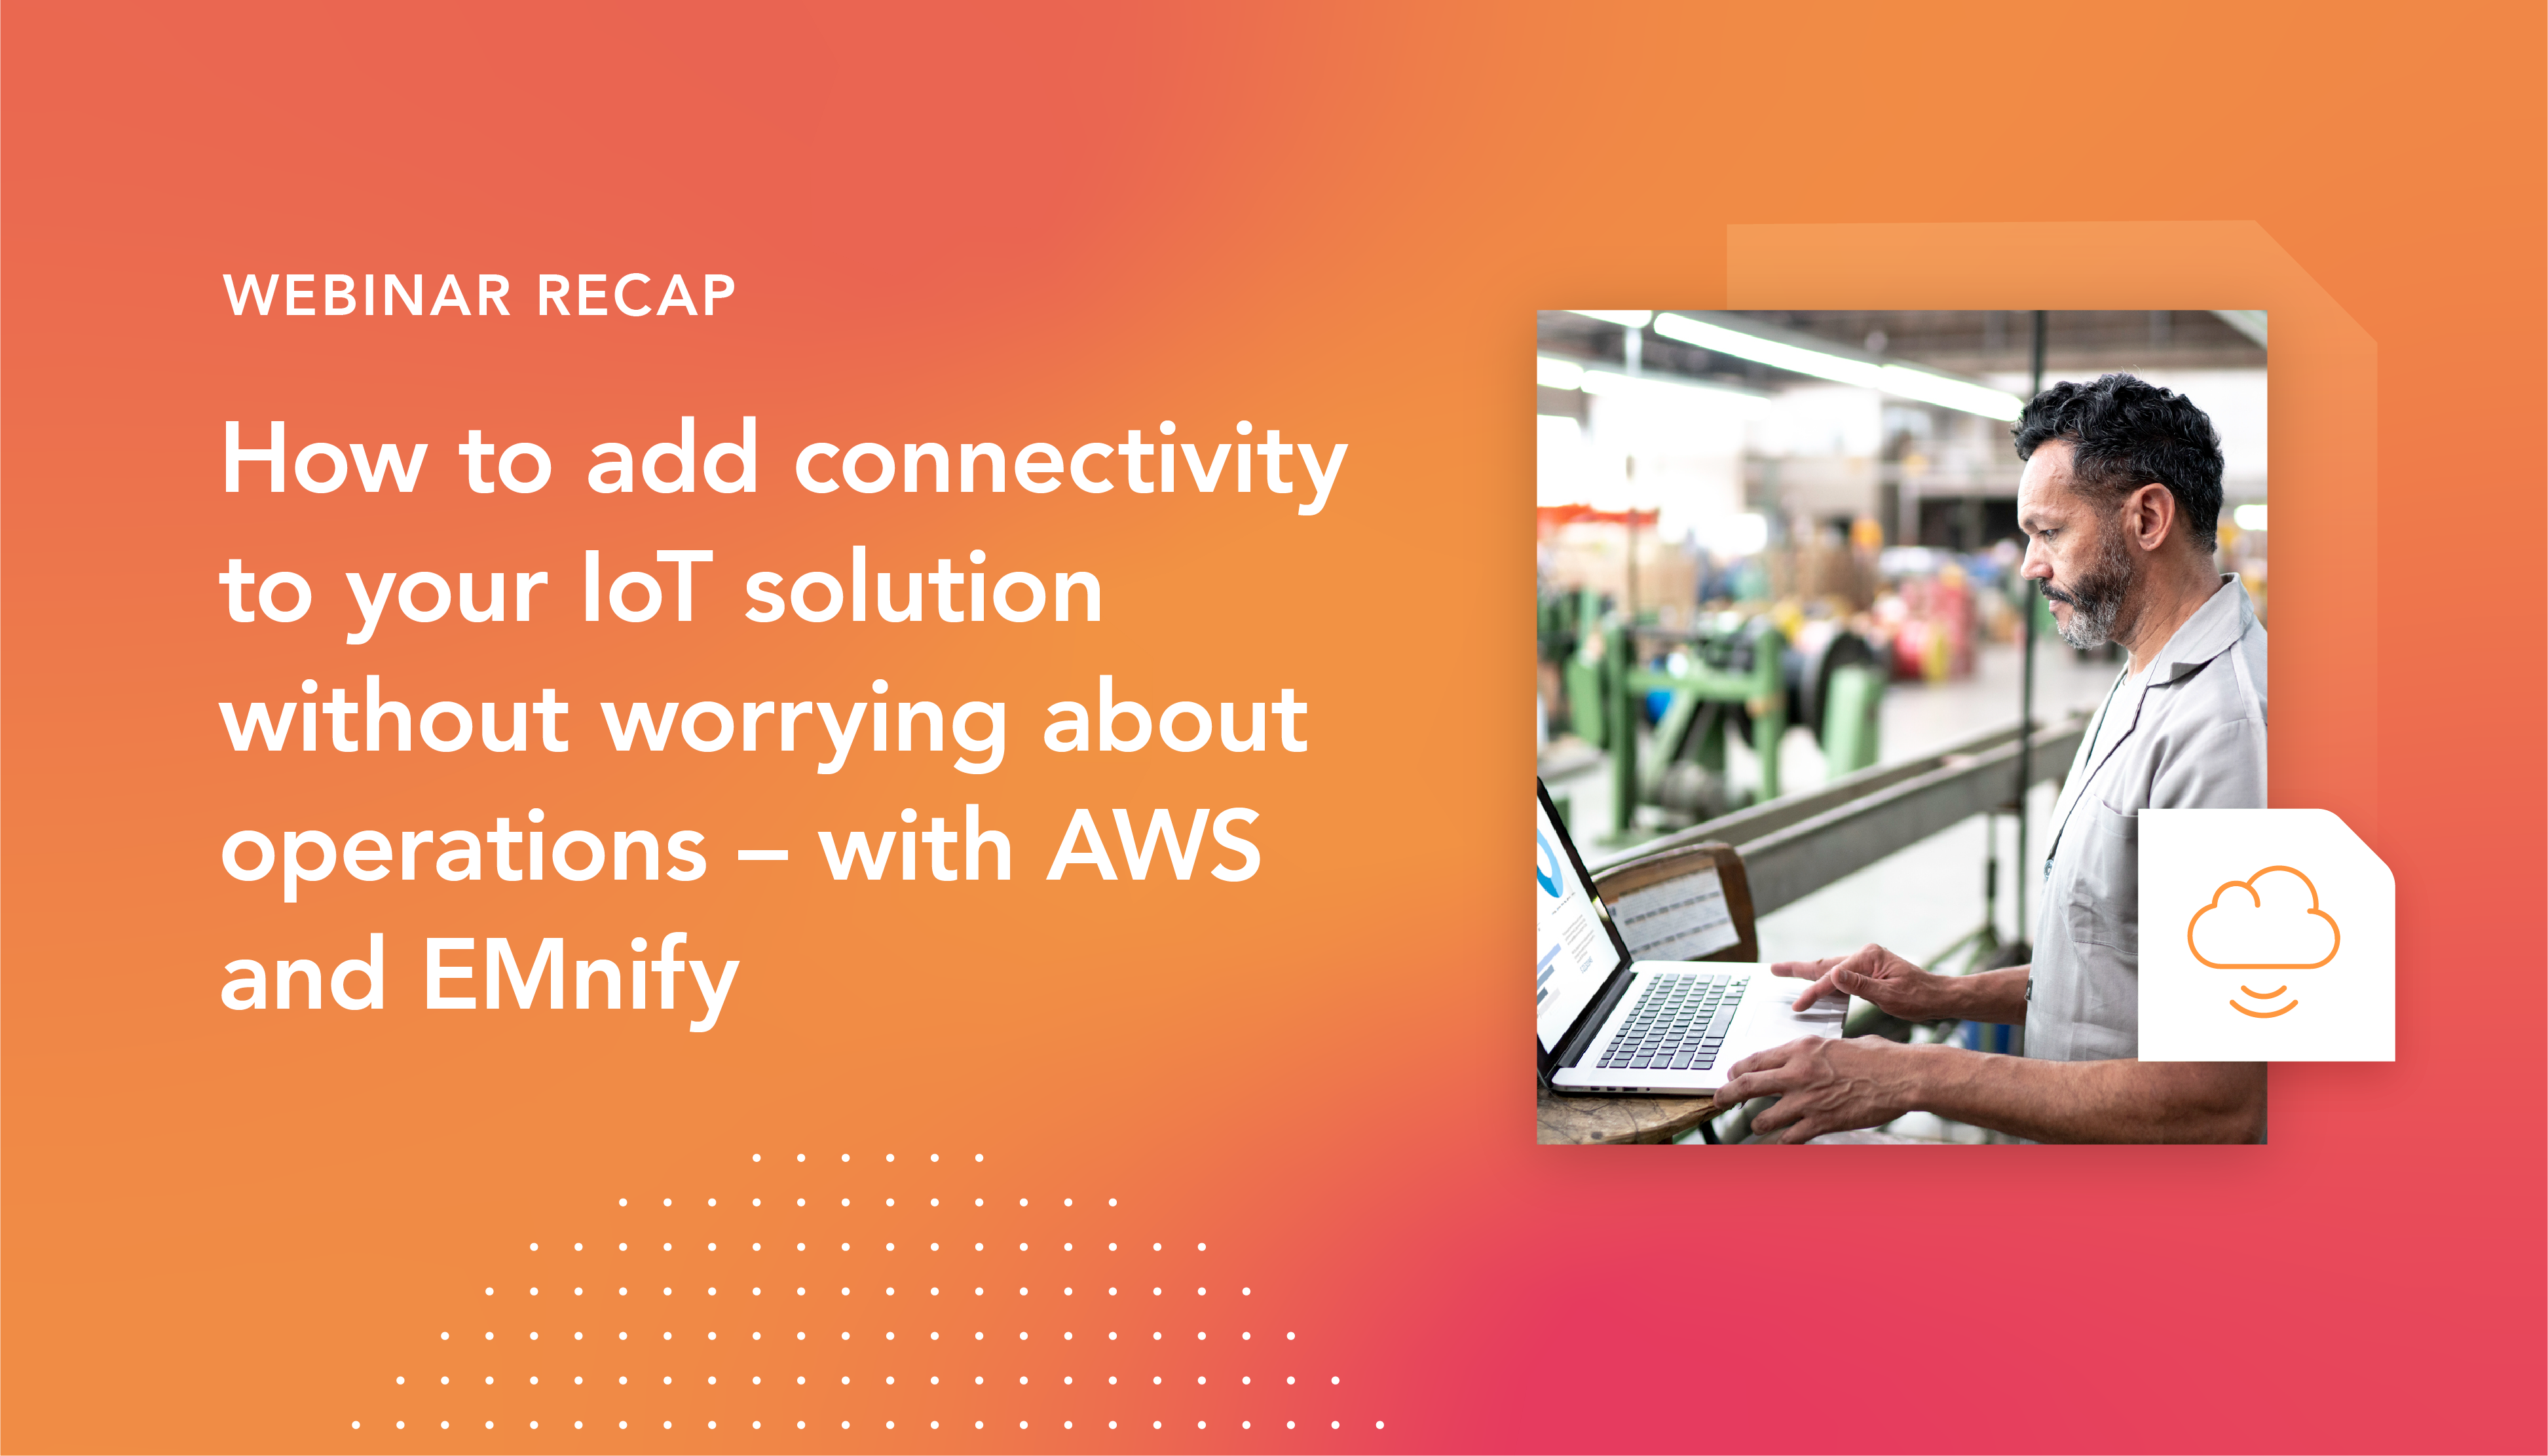 Webinar recap: How to add connectivity to your IoT solution without worrying about operations – with AWS and EMnify